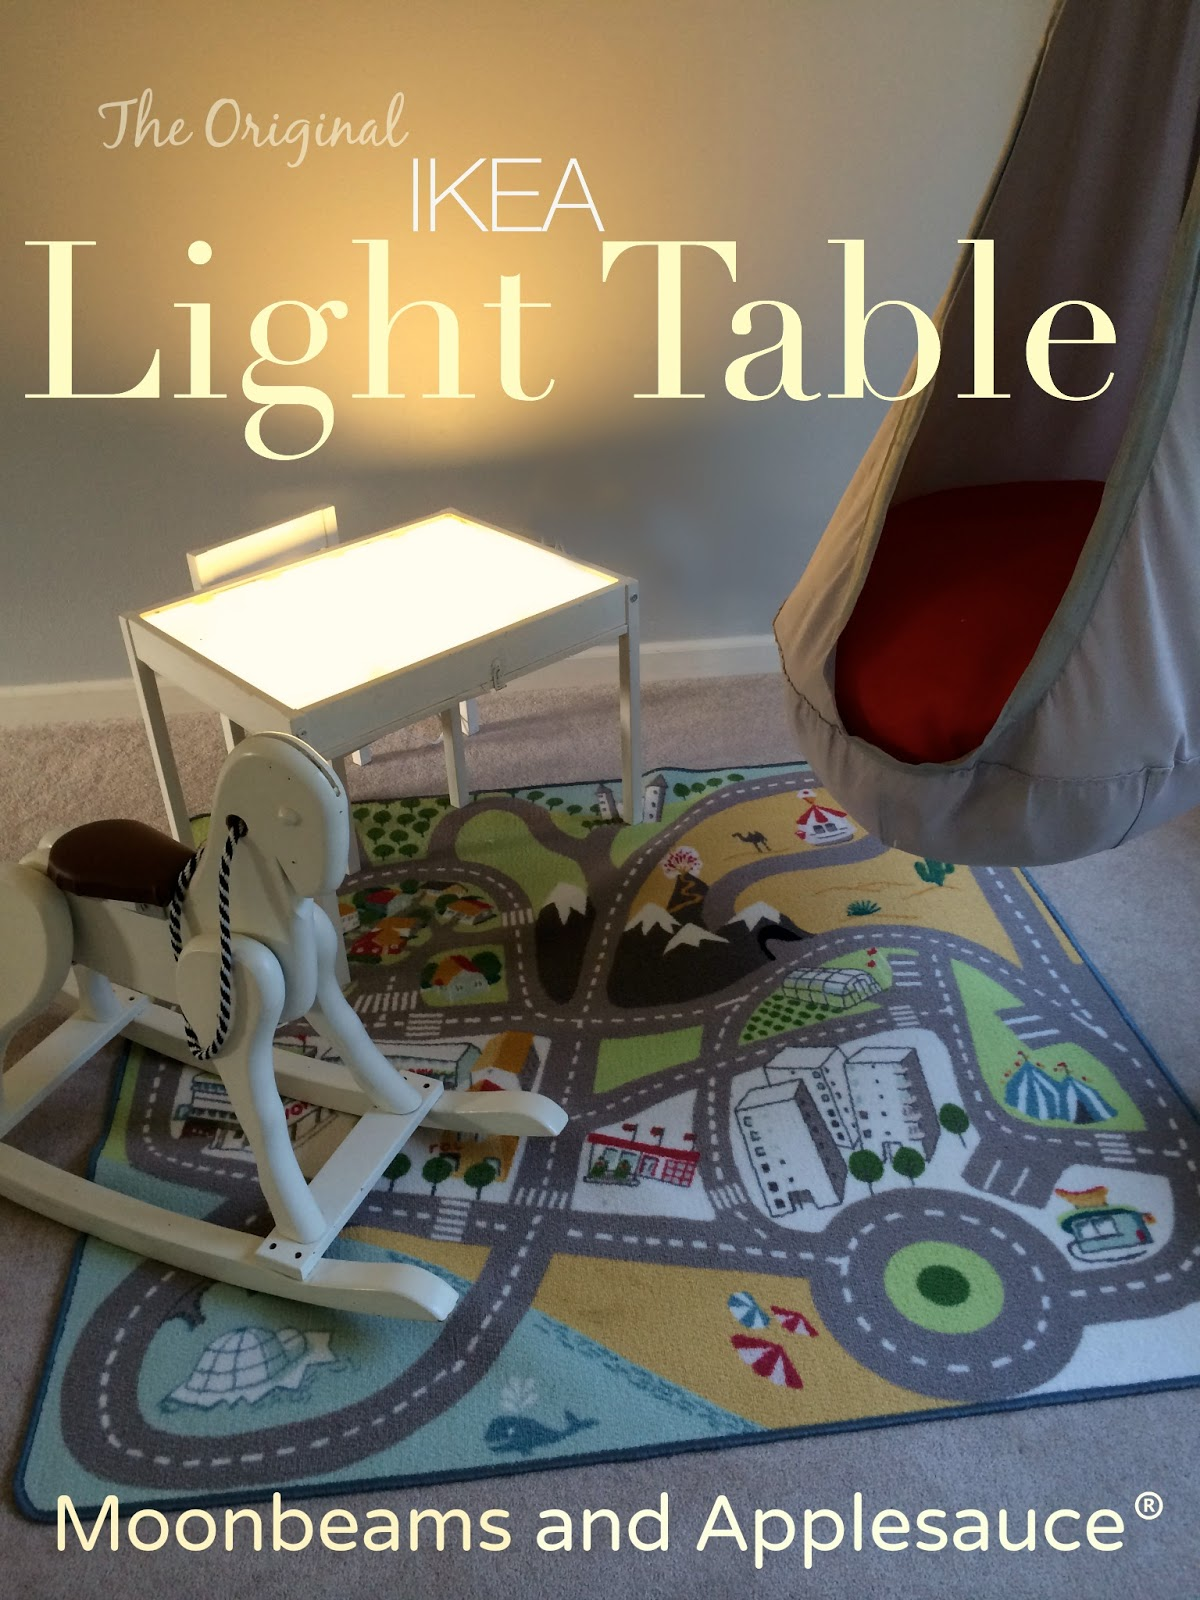 At Moonbeams And Lesauce We Like To Learn Be Creative Have Fun That S Why When Saw How Much Light Table Play Could But Not The